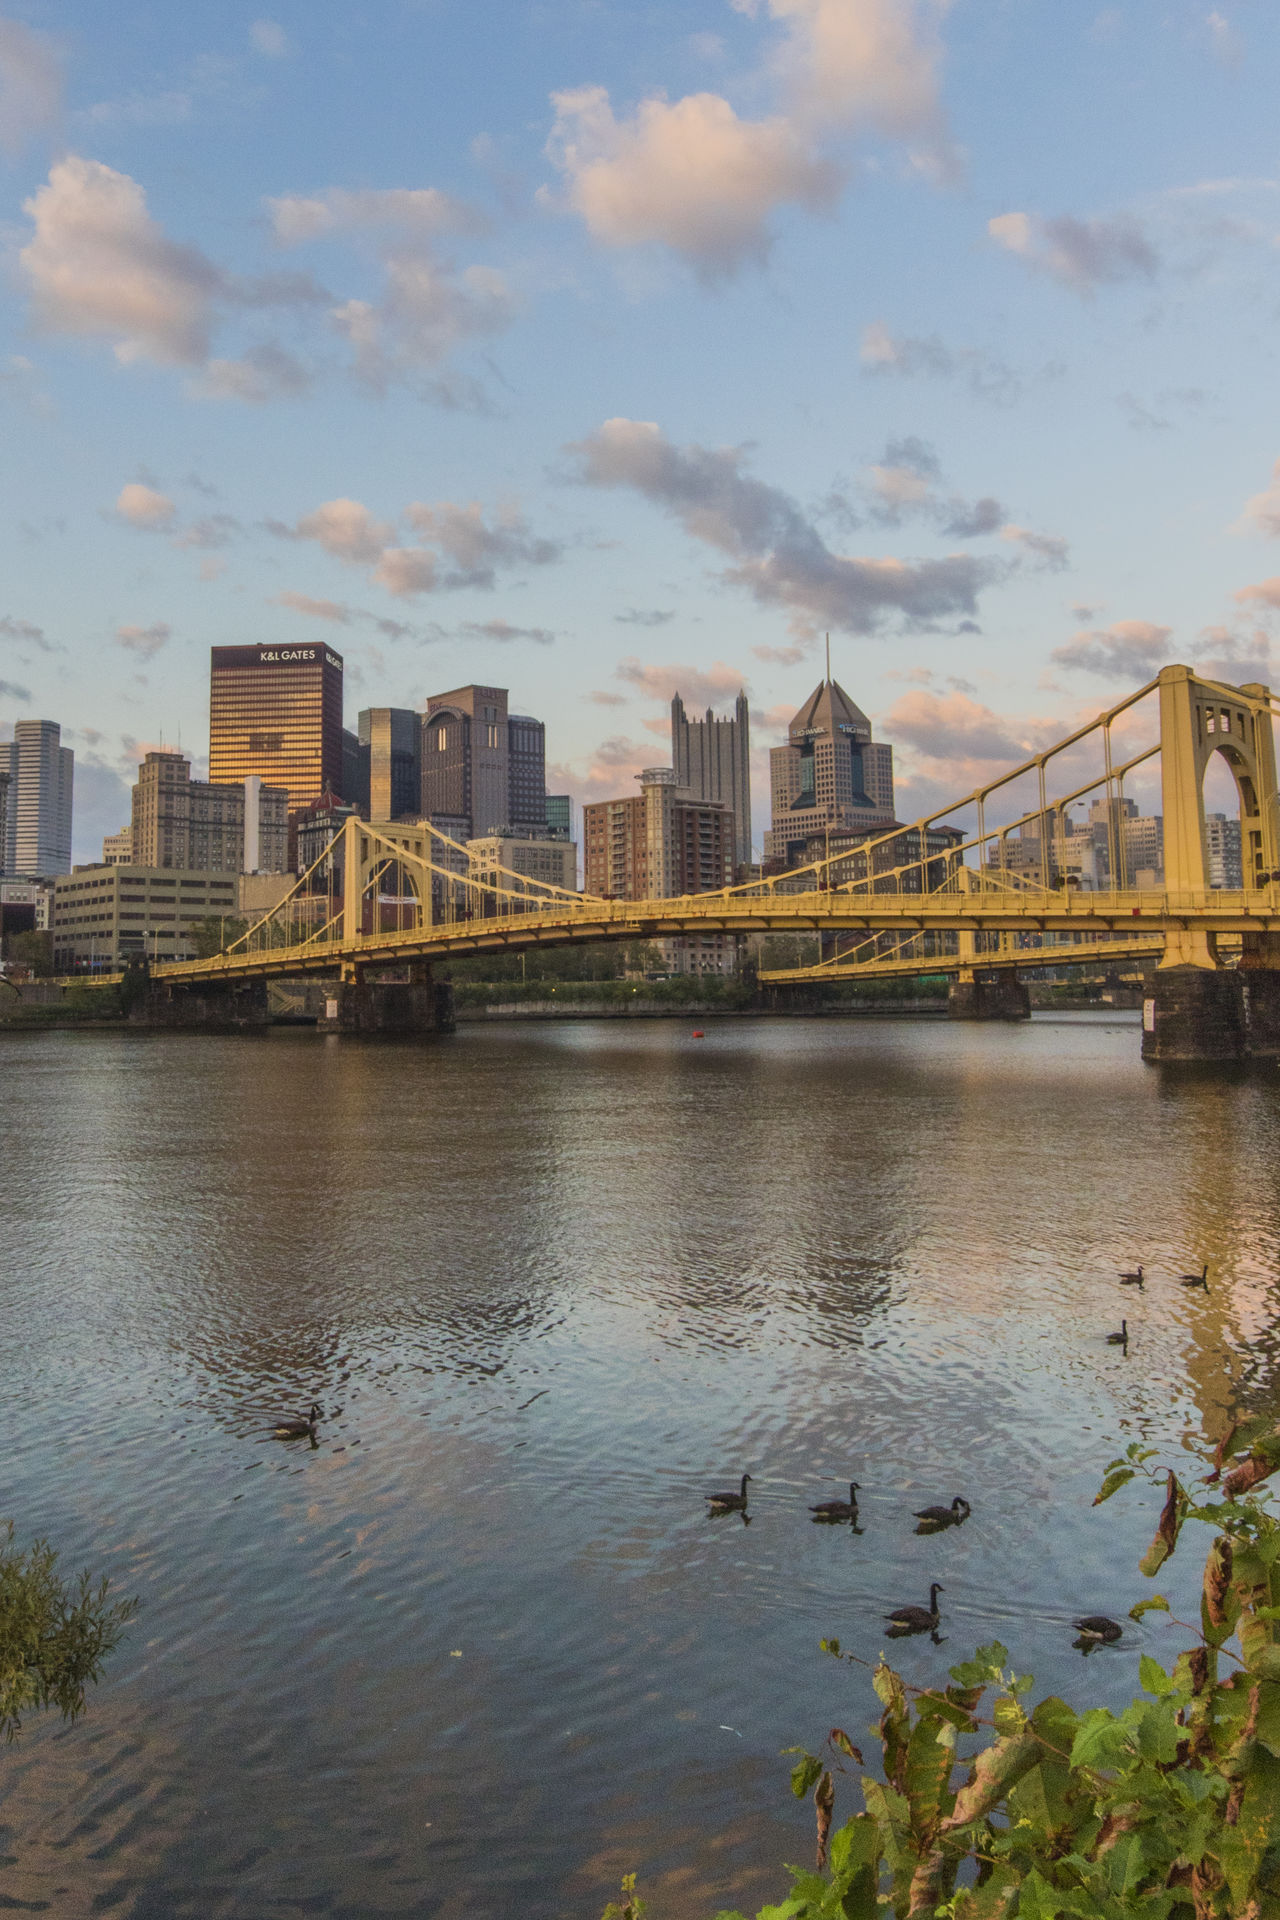 Pittsburgh The Architect - 2016 EyeEm Awards River View Ducks Bridge Cityscapes Tranquil Scene Allegheny River City View  Landscape_photography Urban Exploration Urban The City Light